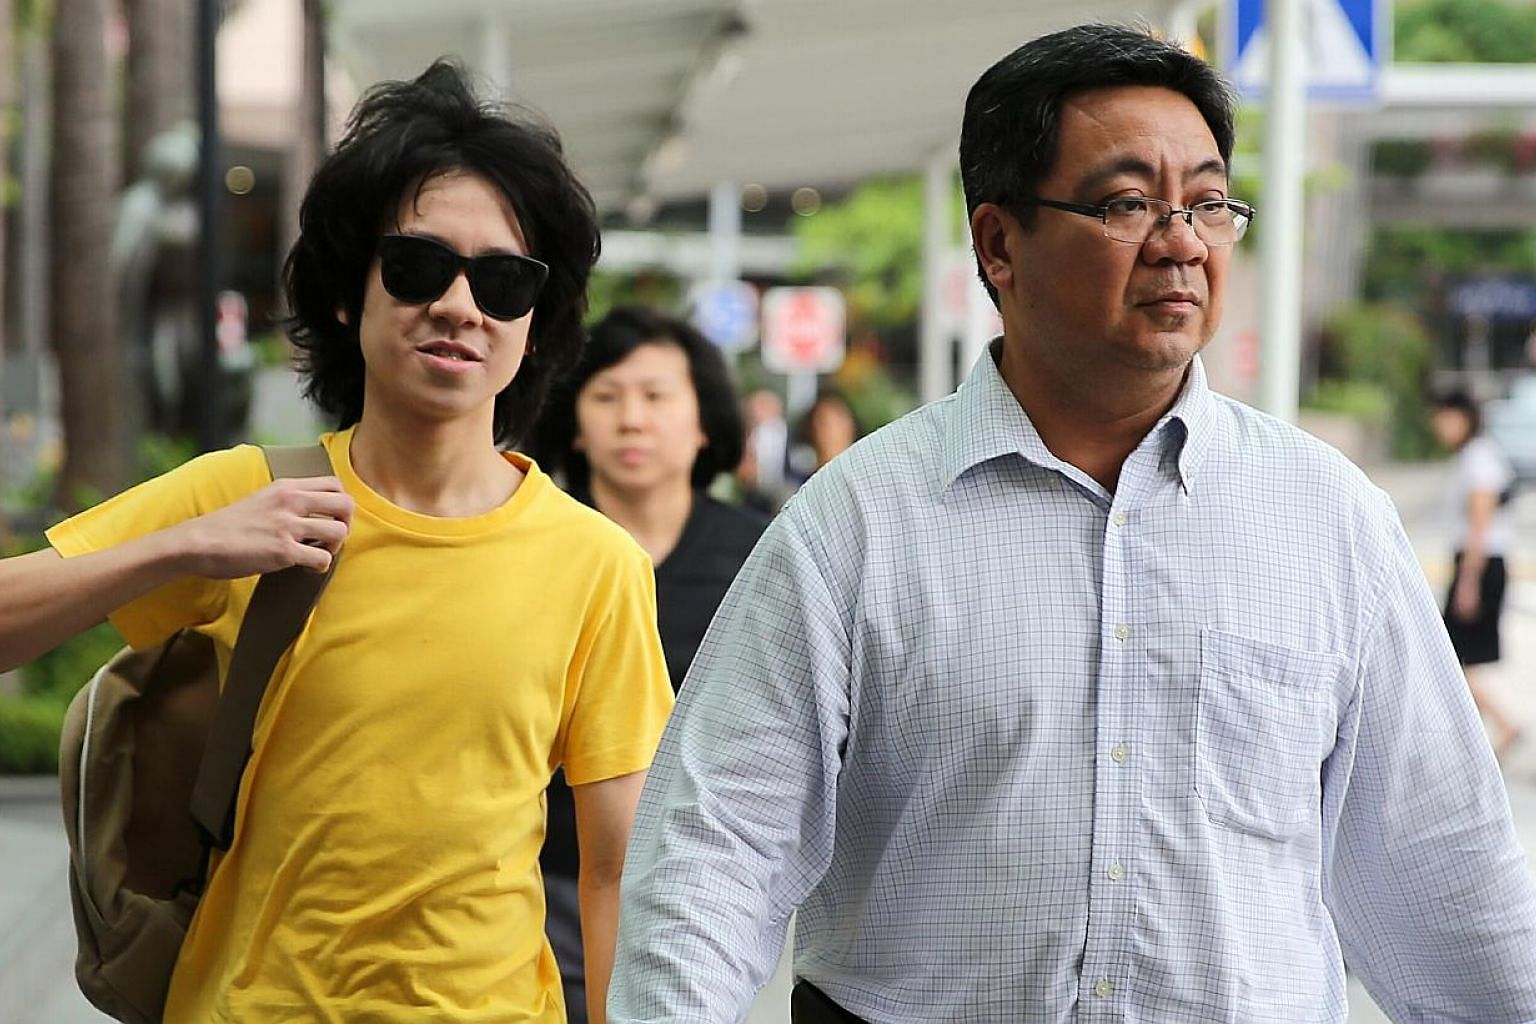 Teenage blogger Amos Yee was back in court on Wednesday for an urgent hearing, after he refused to meet with his assigned probation officer. -- ST PHOTO: WONG KWAI CHOW